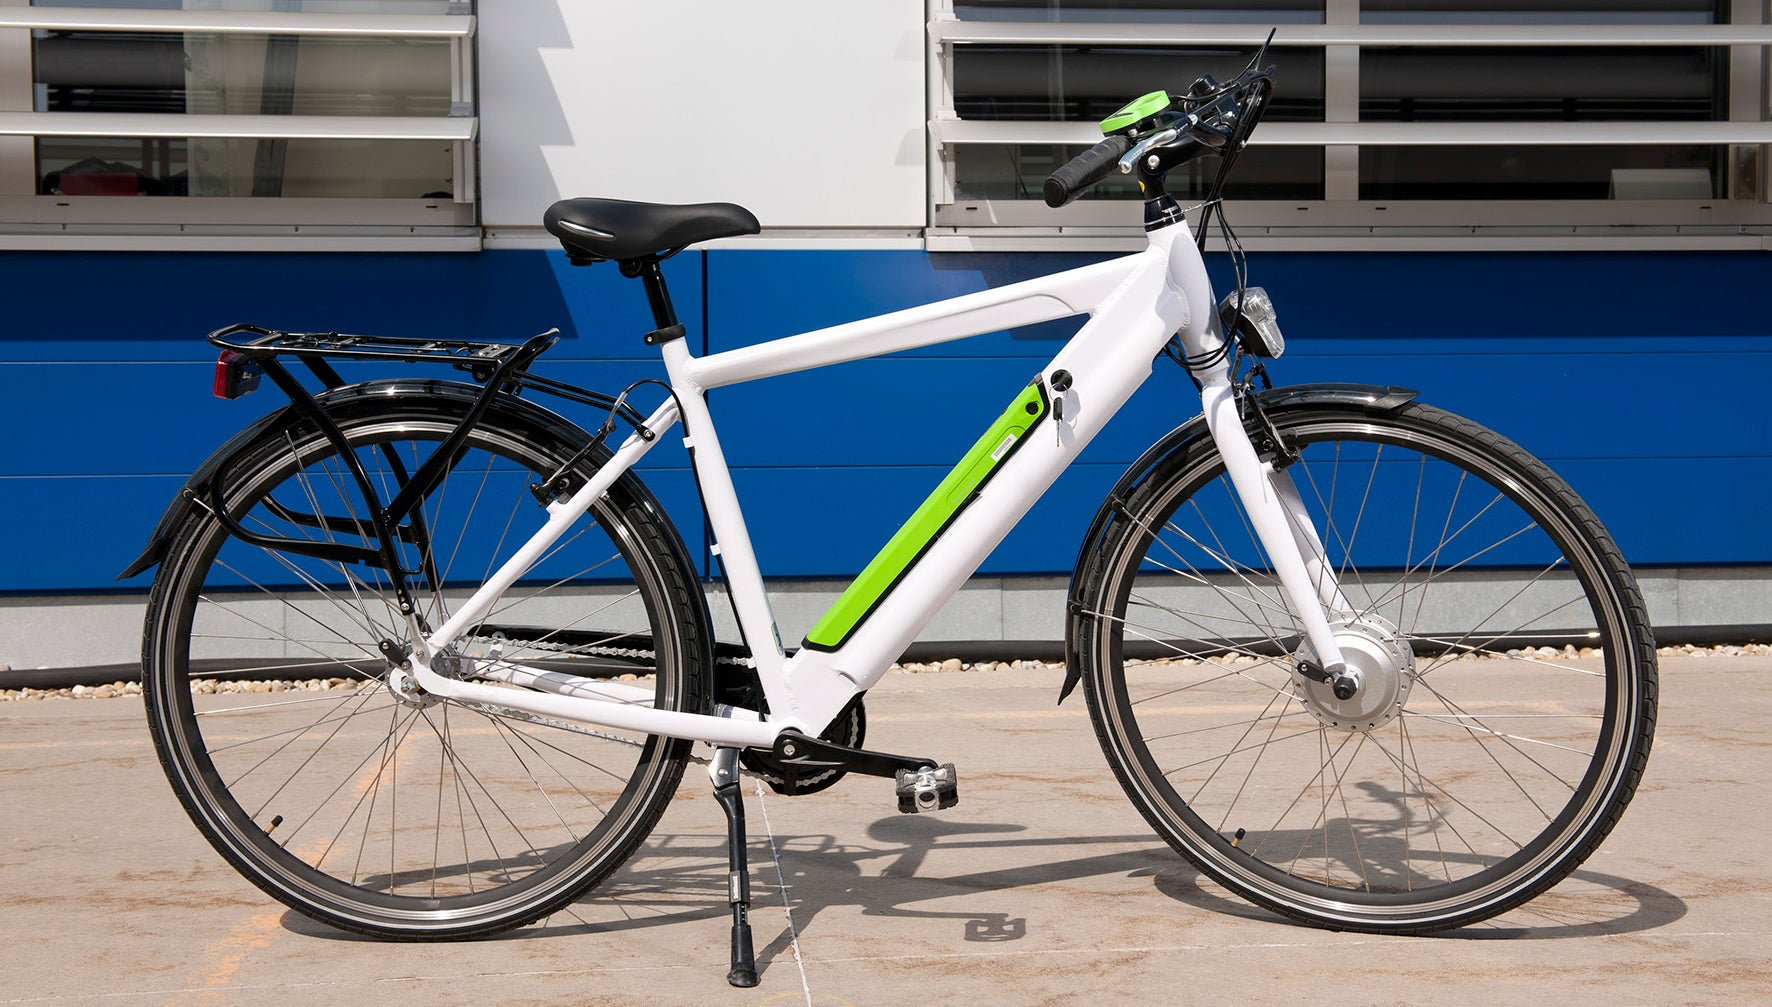 ikea 39 s selling an electric bike to help get all those boxes home gizmodo australia. Black Bedroom Furniture Sets. Home Design Ideas